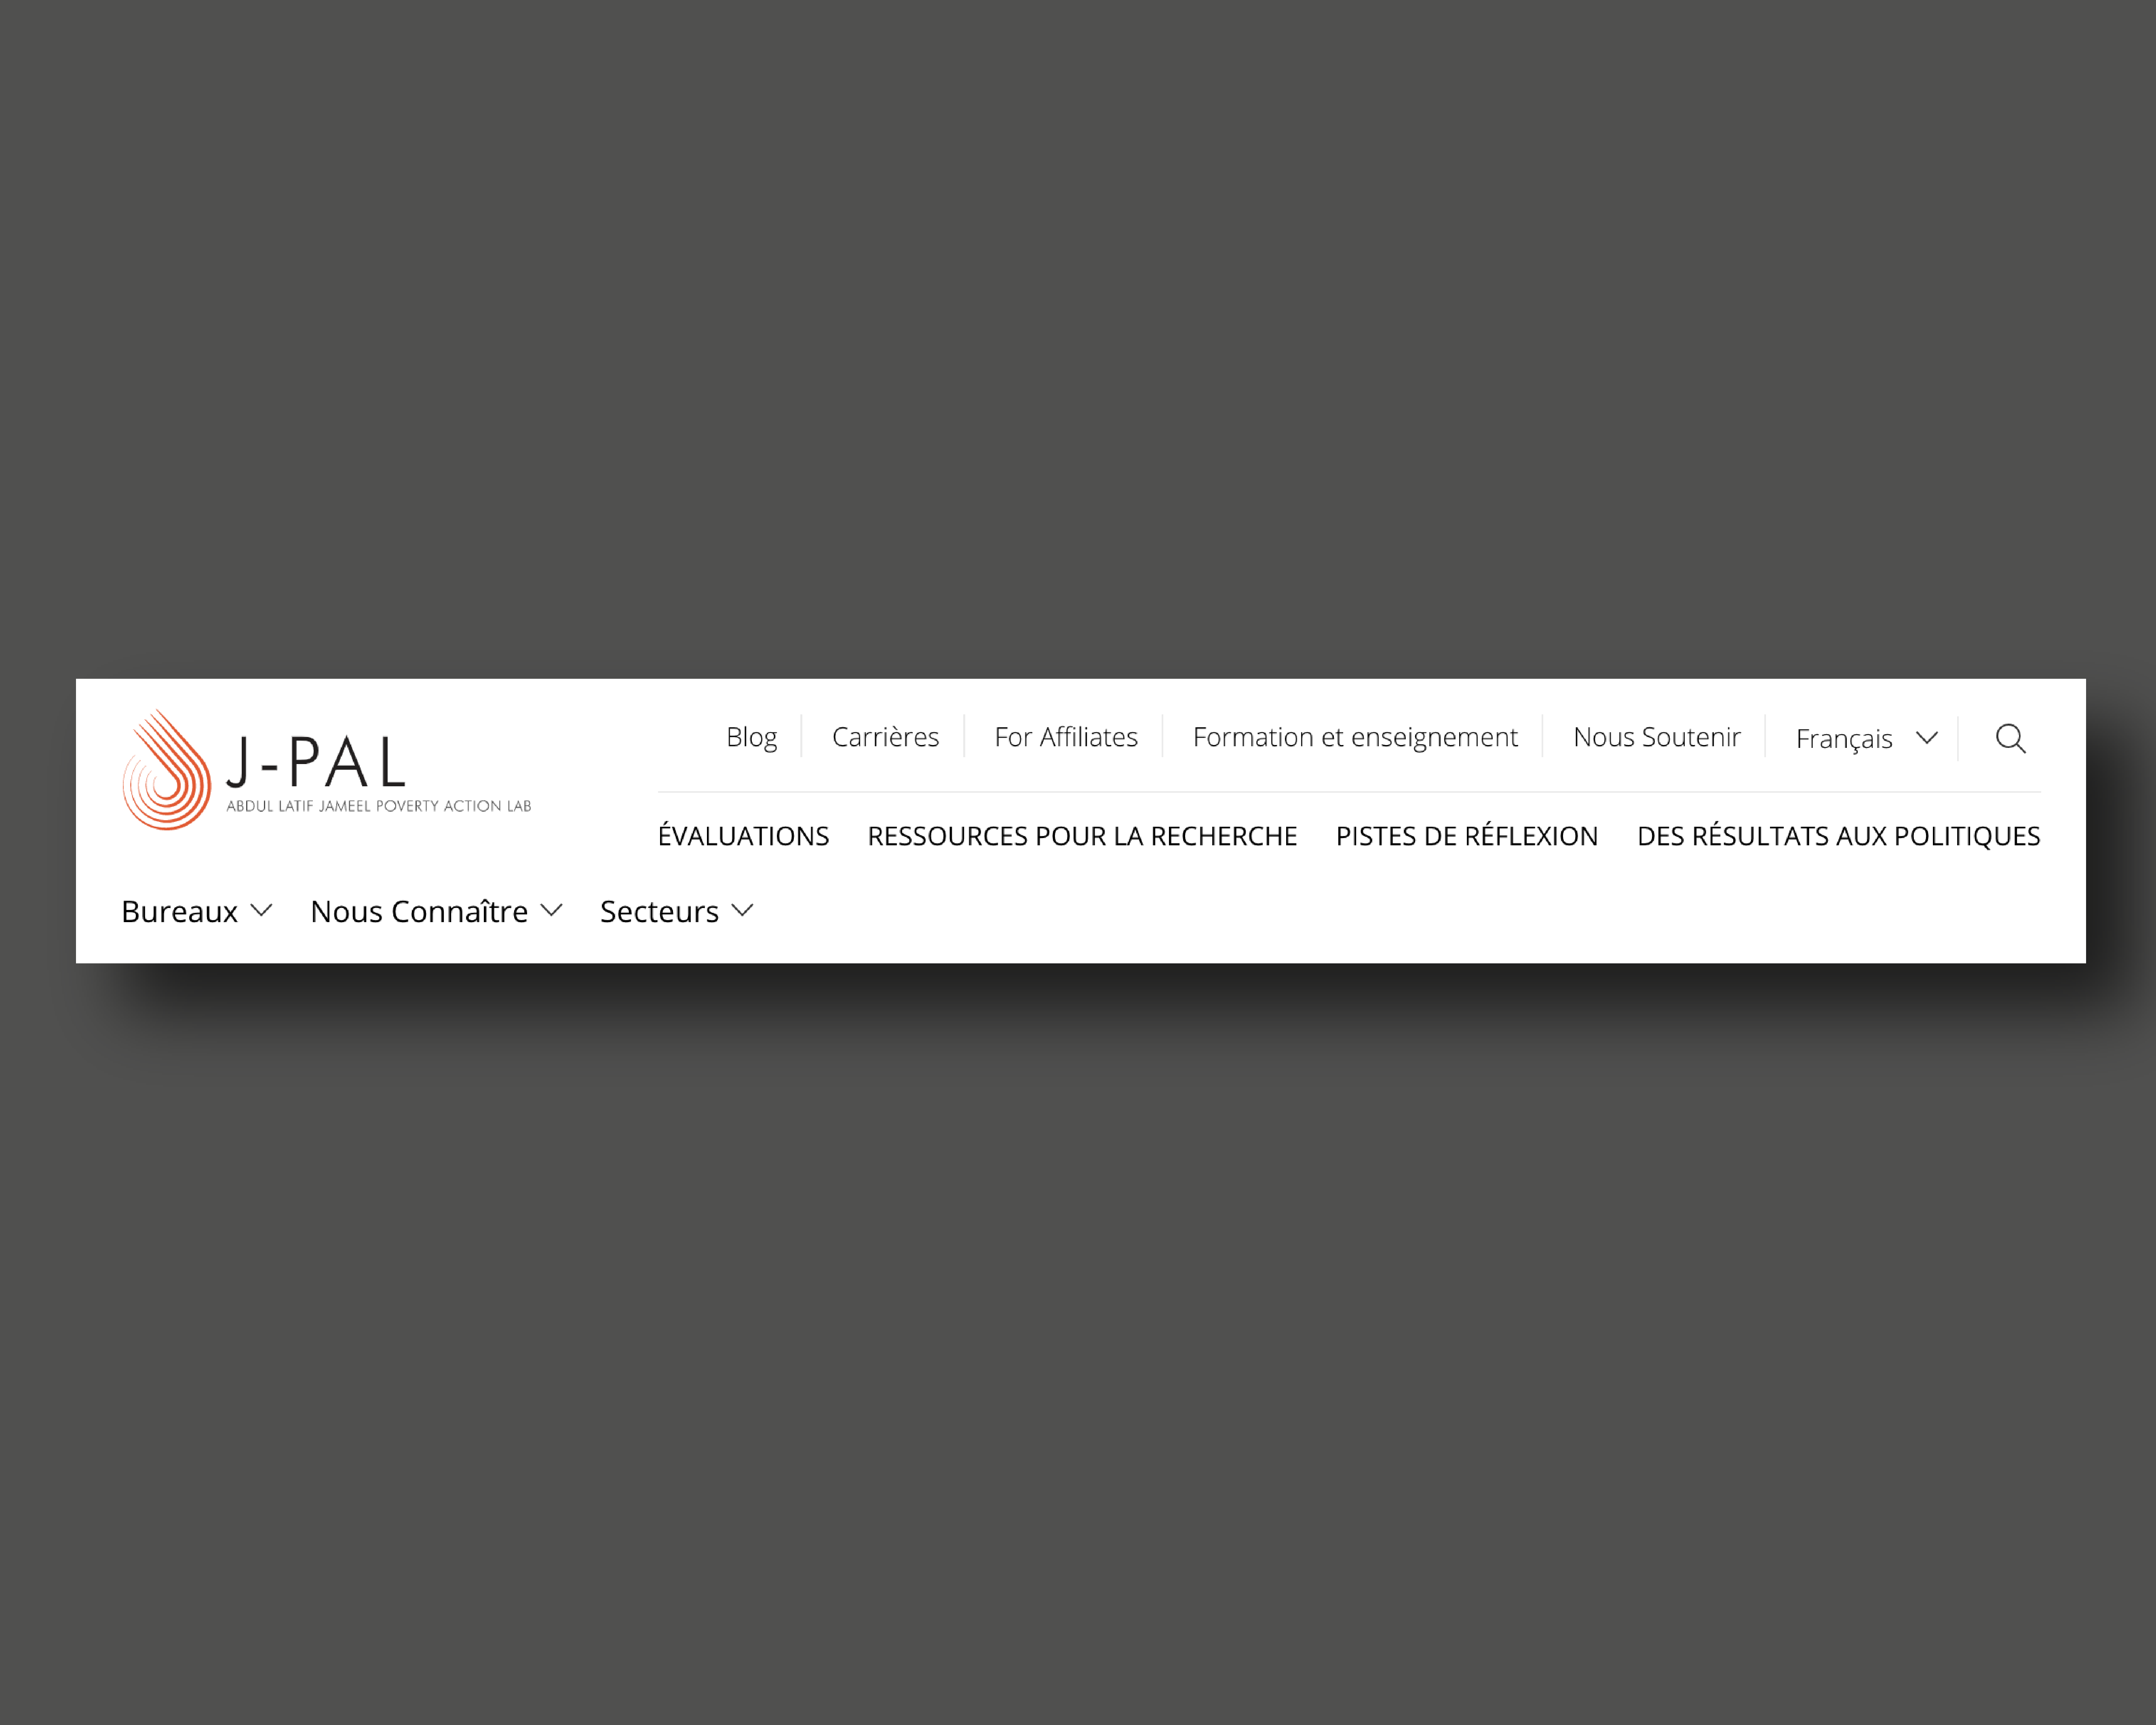 J-PAL header in French